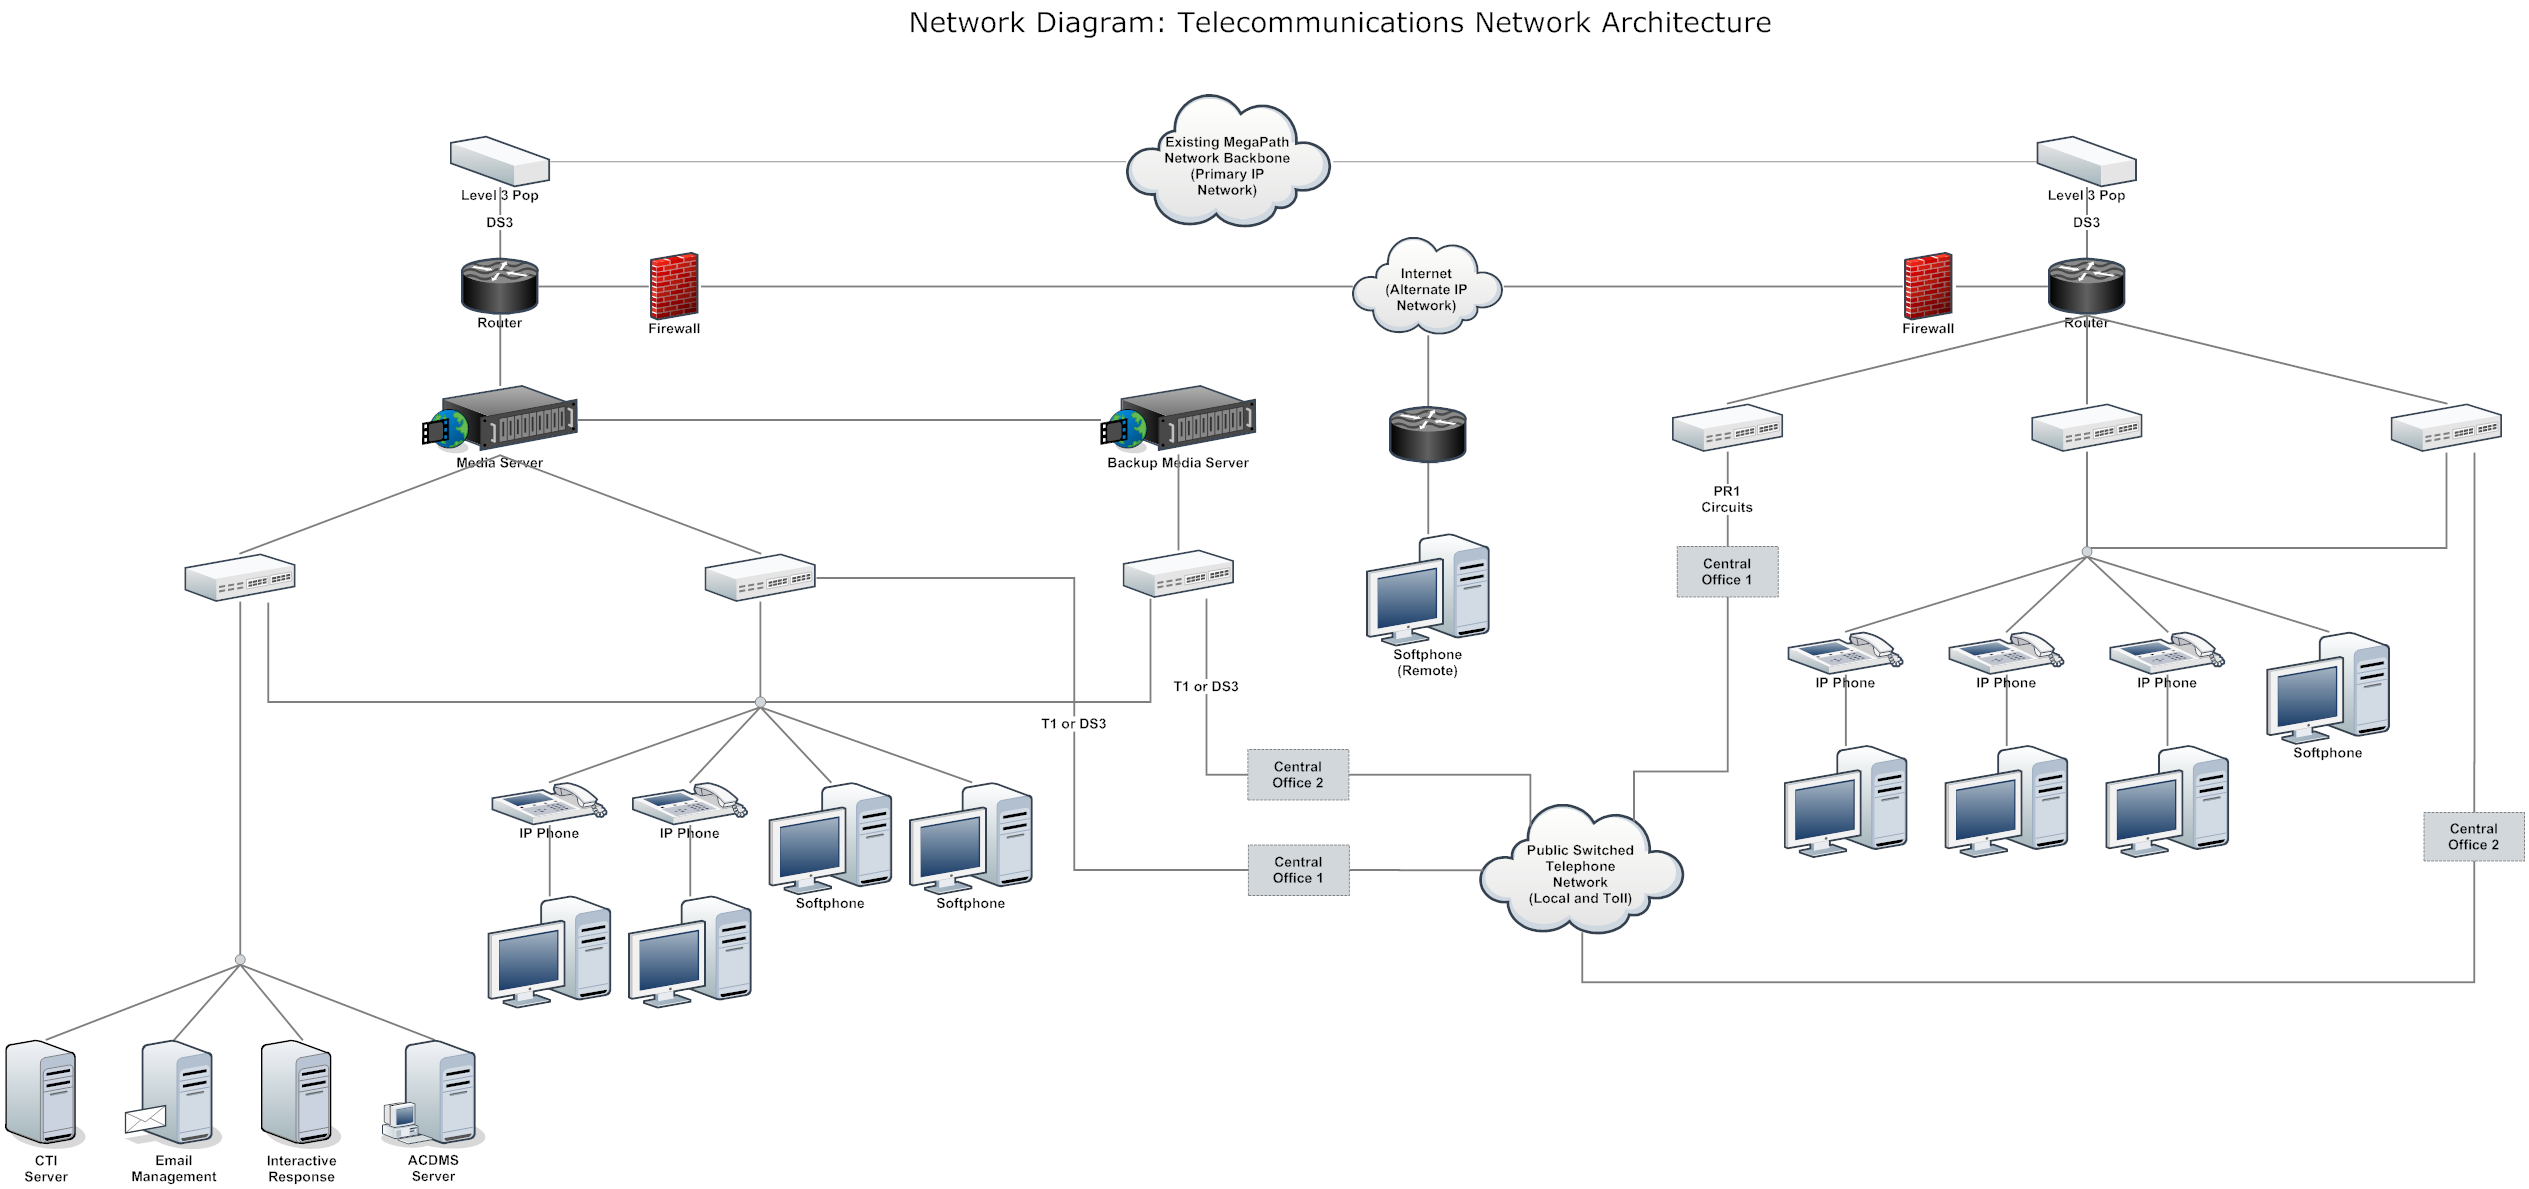 Network Diagram Example Telecommunnications Network Architecture – Network Diagram